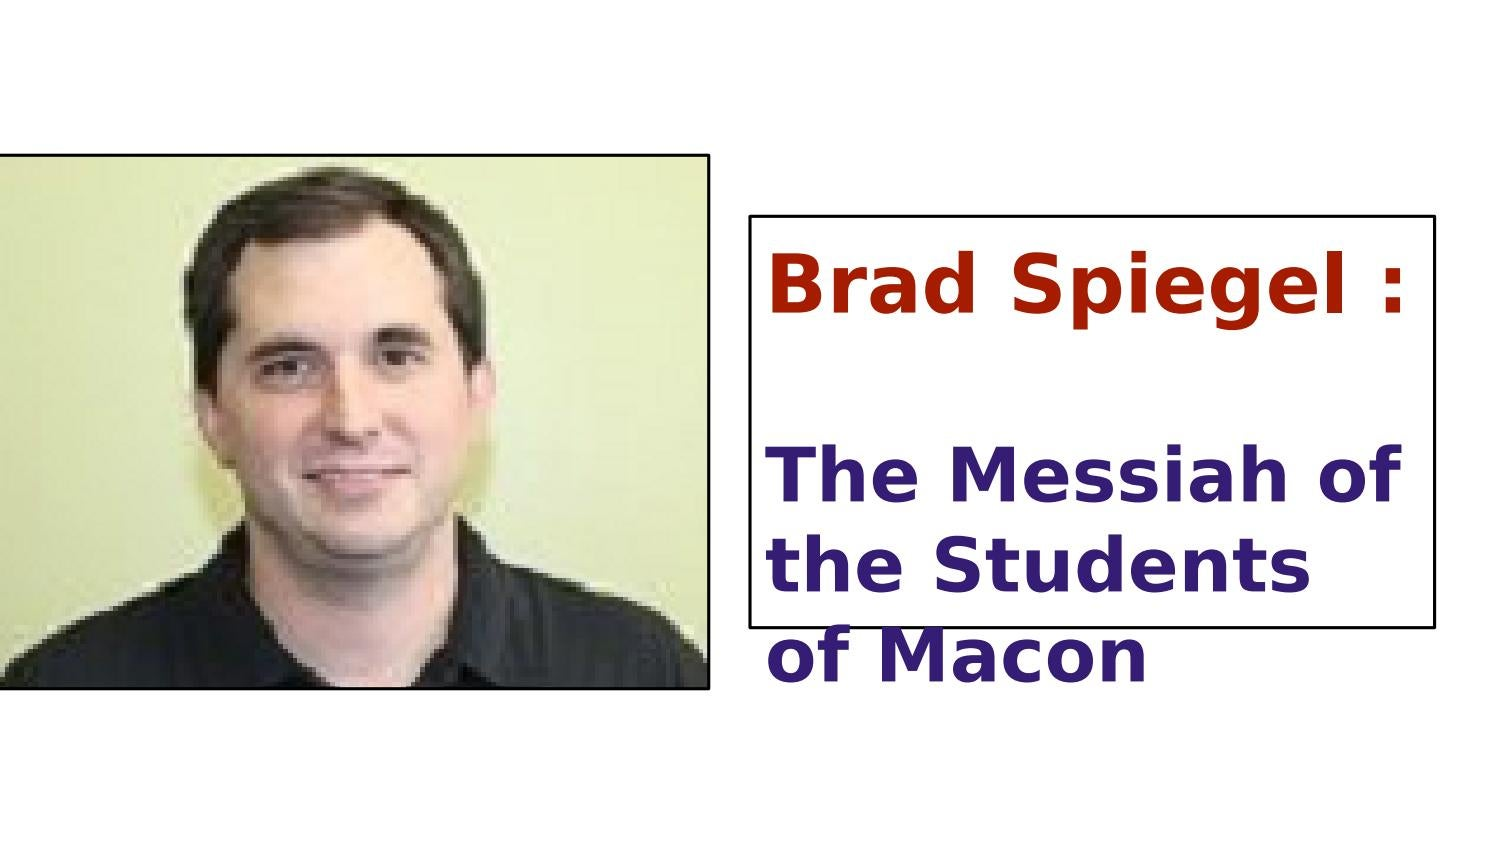 Brad spiegel : The Messiah of the Students of Macon